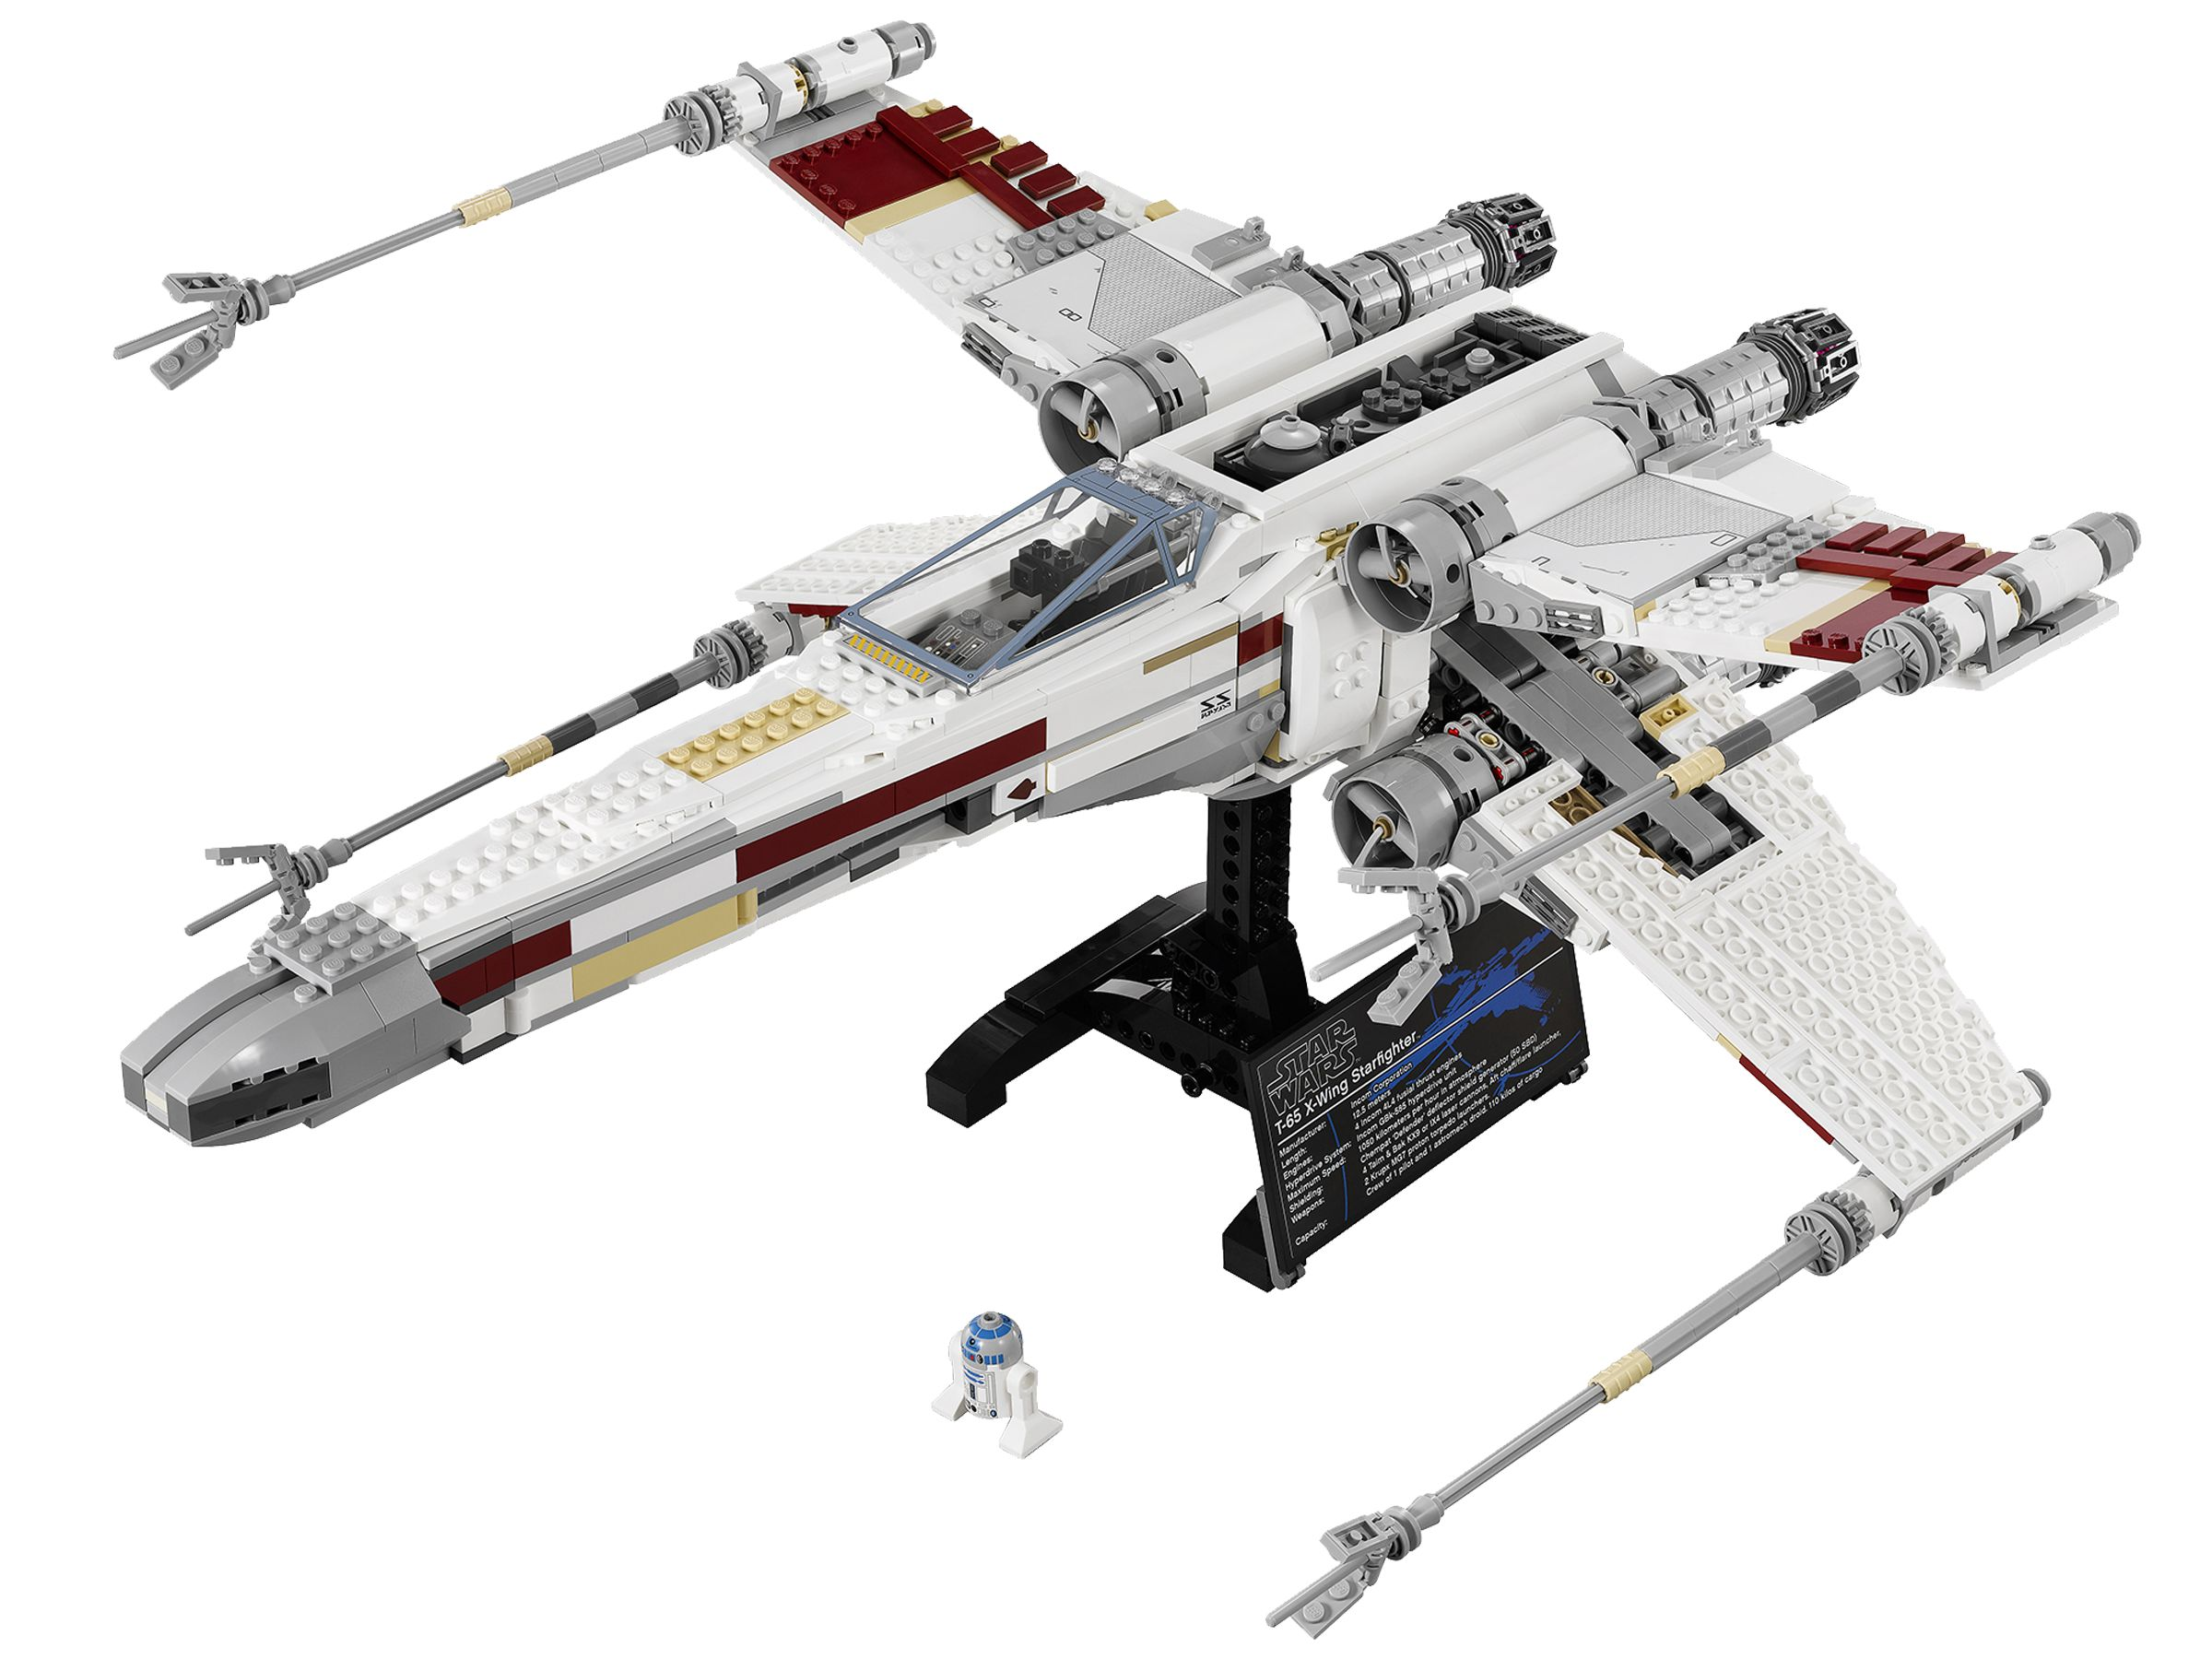 LEGO Star Wars 10240 Red Five X-wing Starfighter™ LEGO_10240.jpg